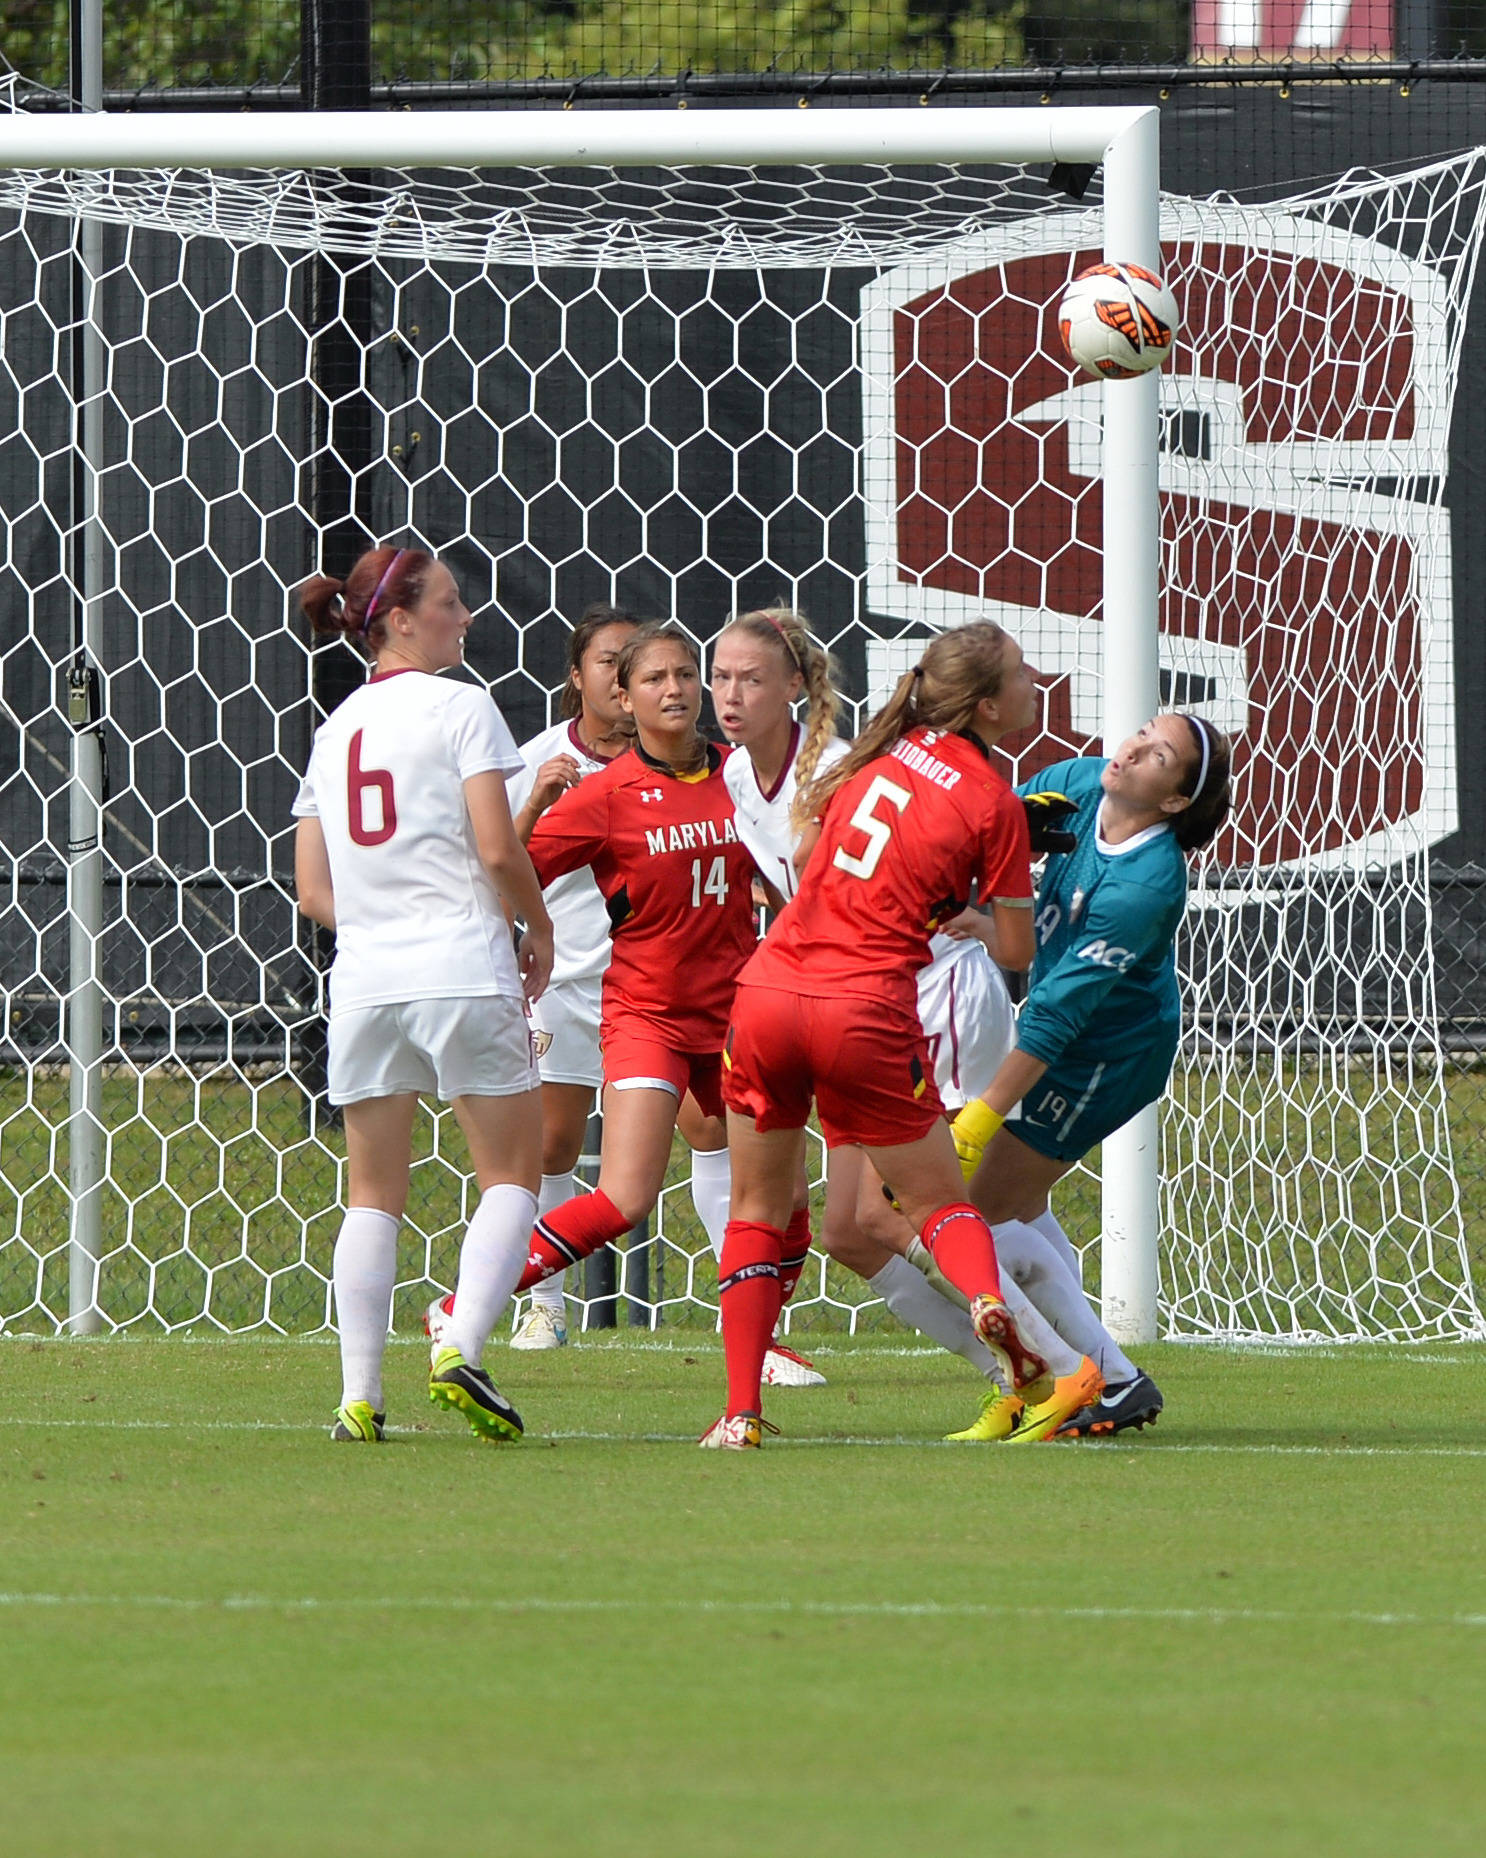 Kelsey Wys makes a nice grab on a loose ball following a Maryland corner kick.